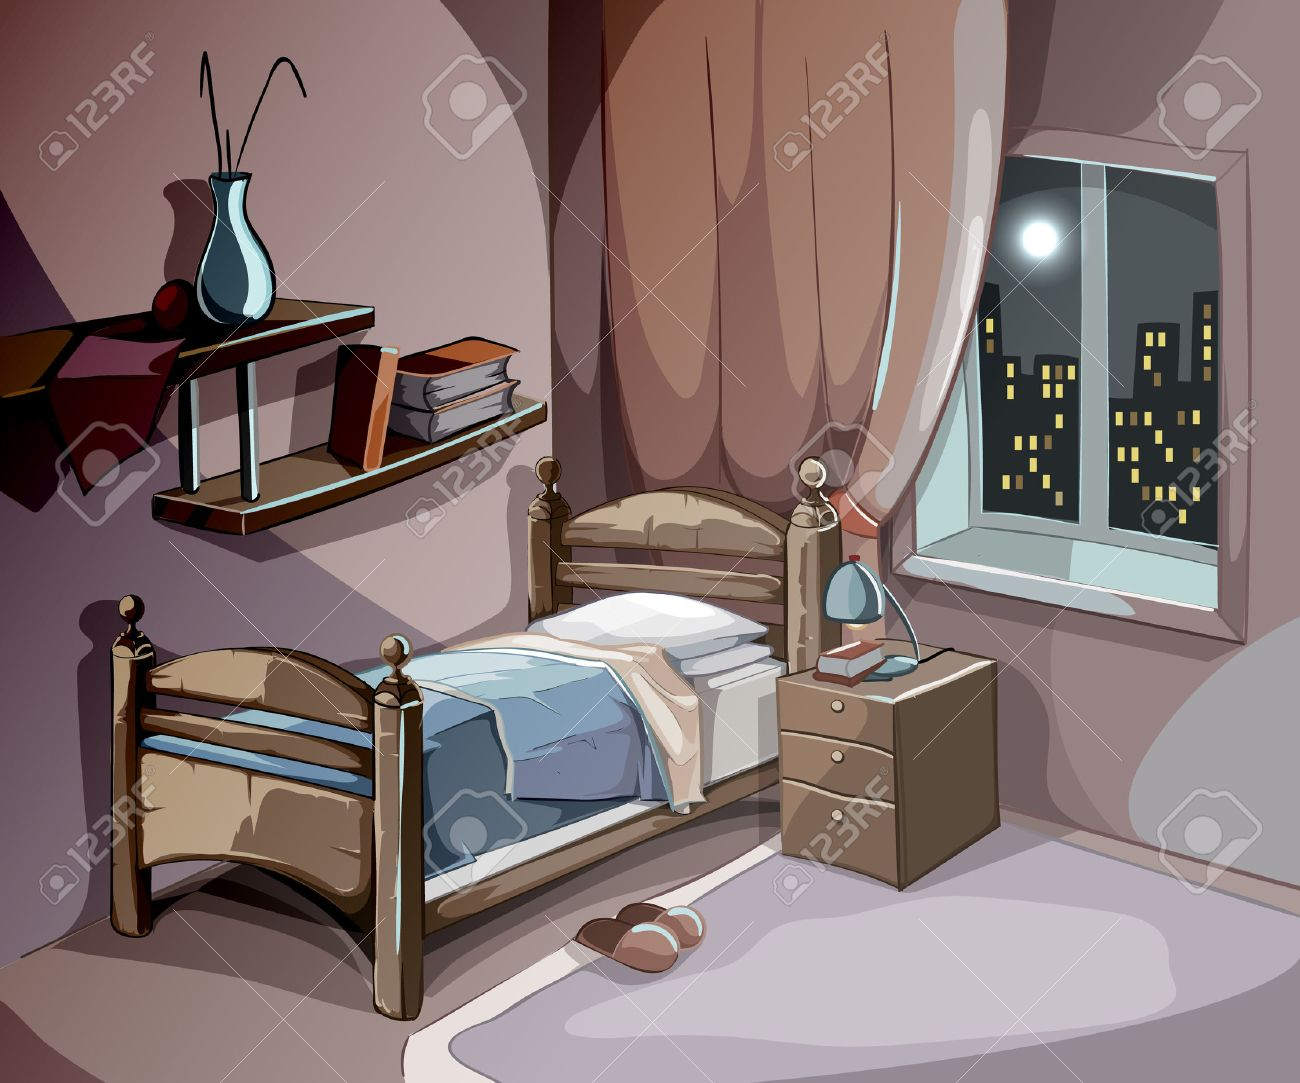 Bedroom interior at night in cartoon style. Vector sleeping concept background. Illustration room with bed furniture, comfort for sleep relaxation and dream - 51706899